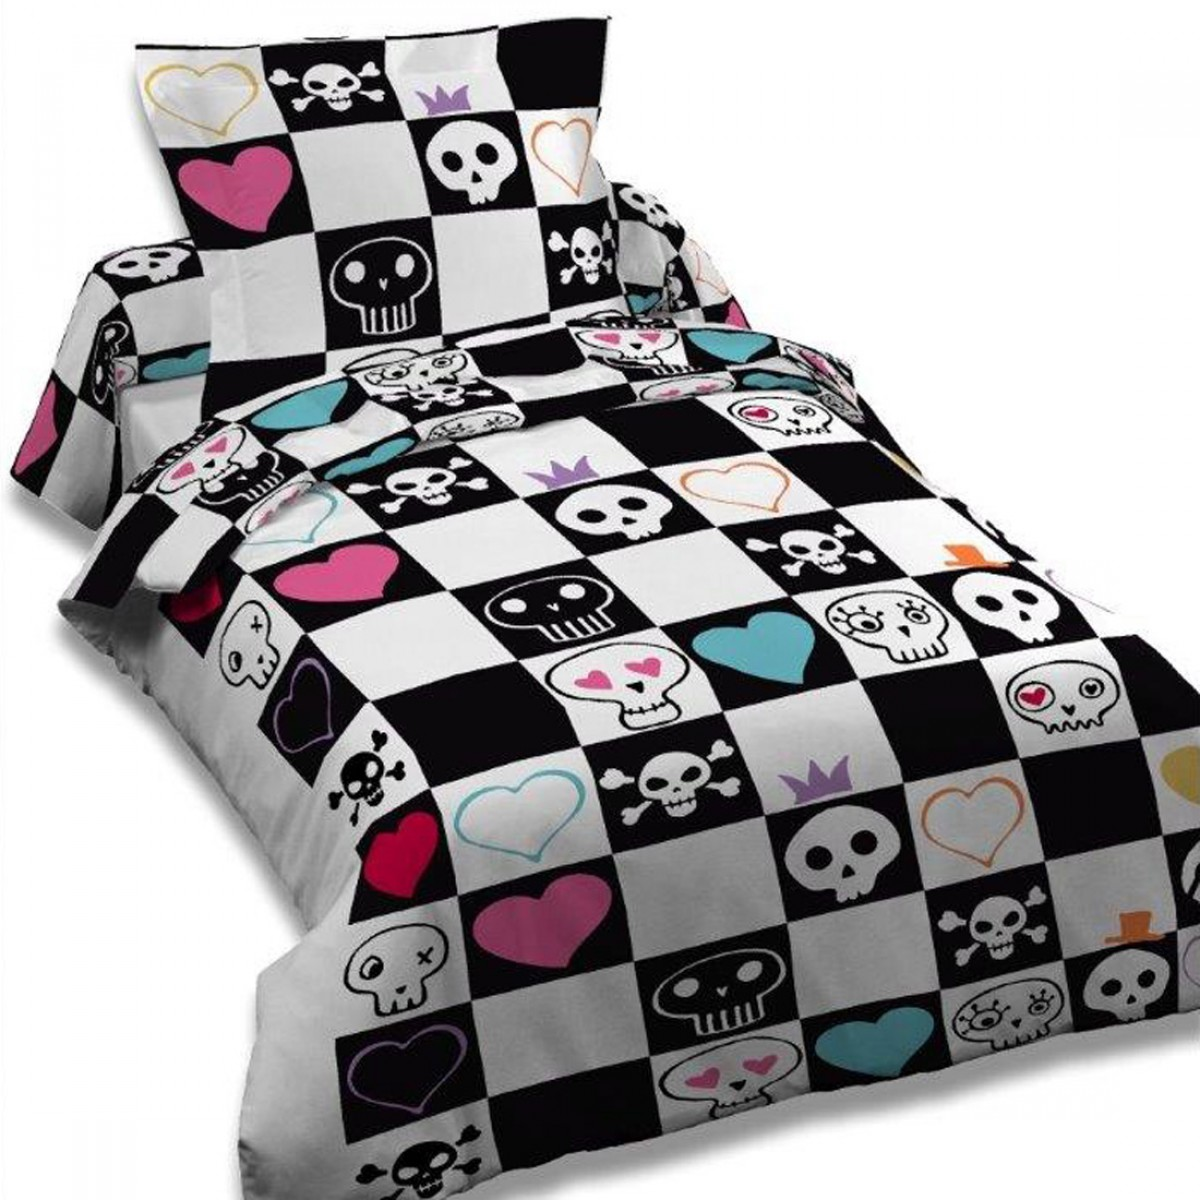 housse de couette 140x200 skully in bed les douces nuits de ma linge de maison. Black Bedroom Furniture Sets. Home Design Ideas